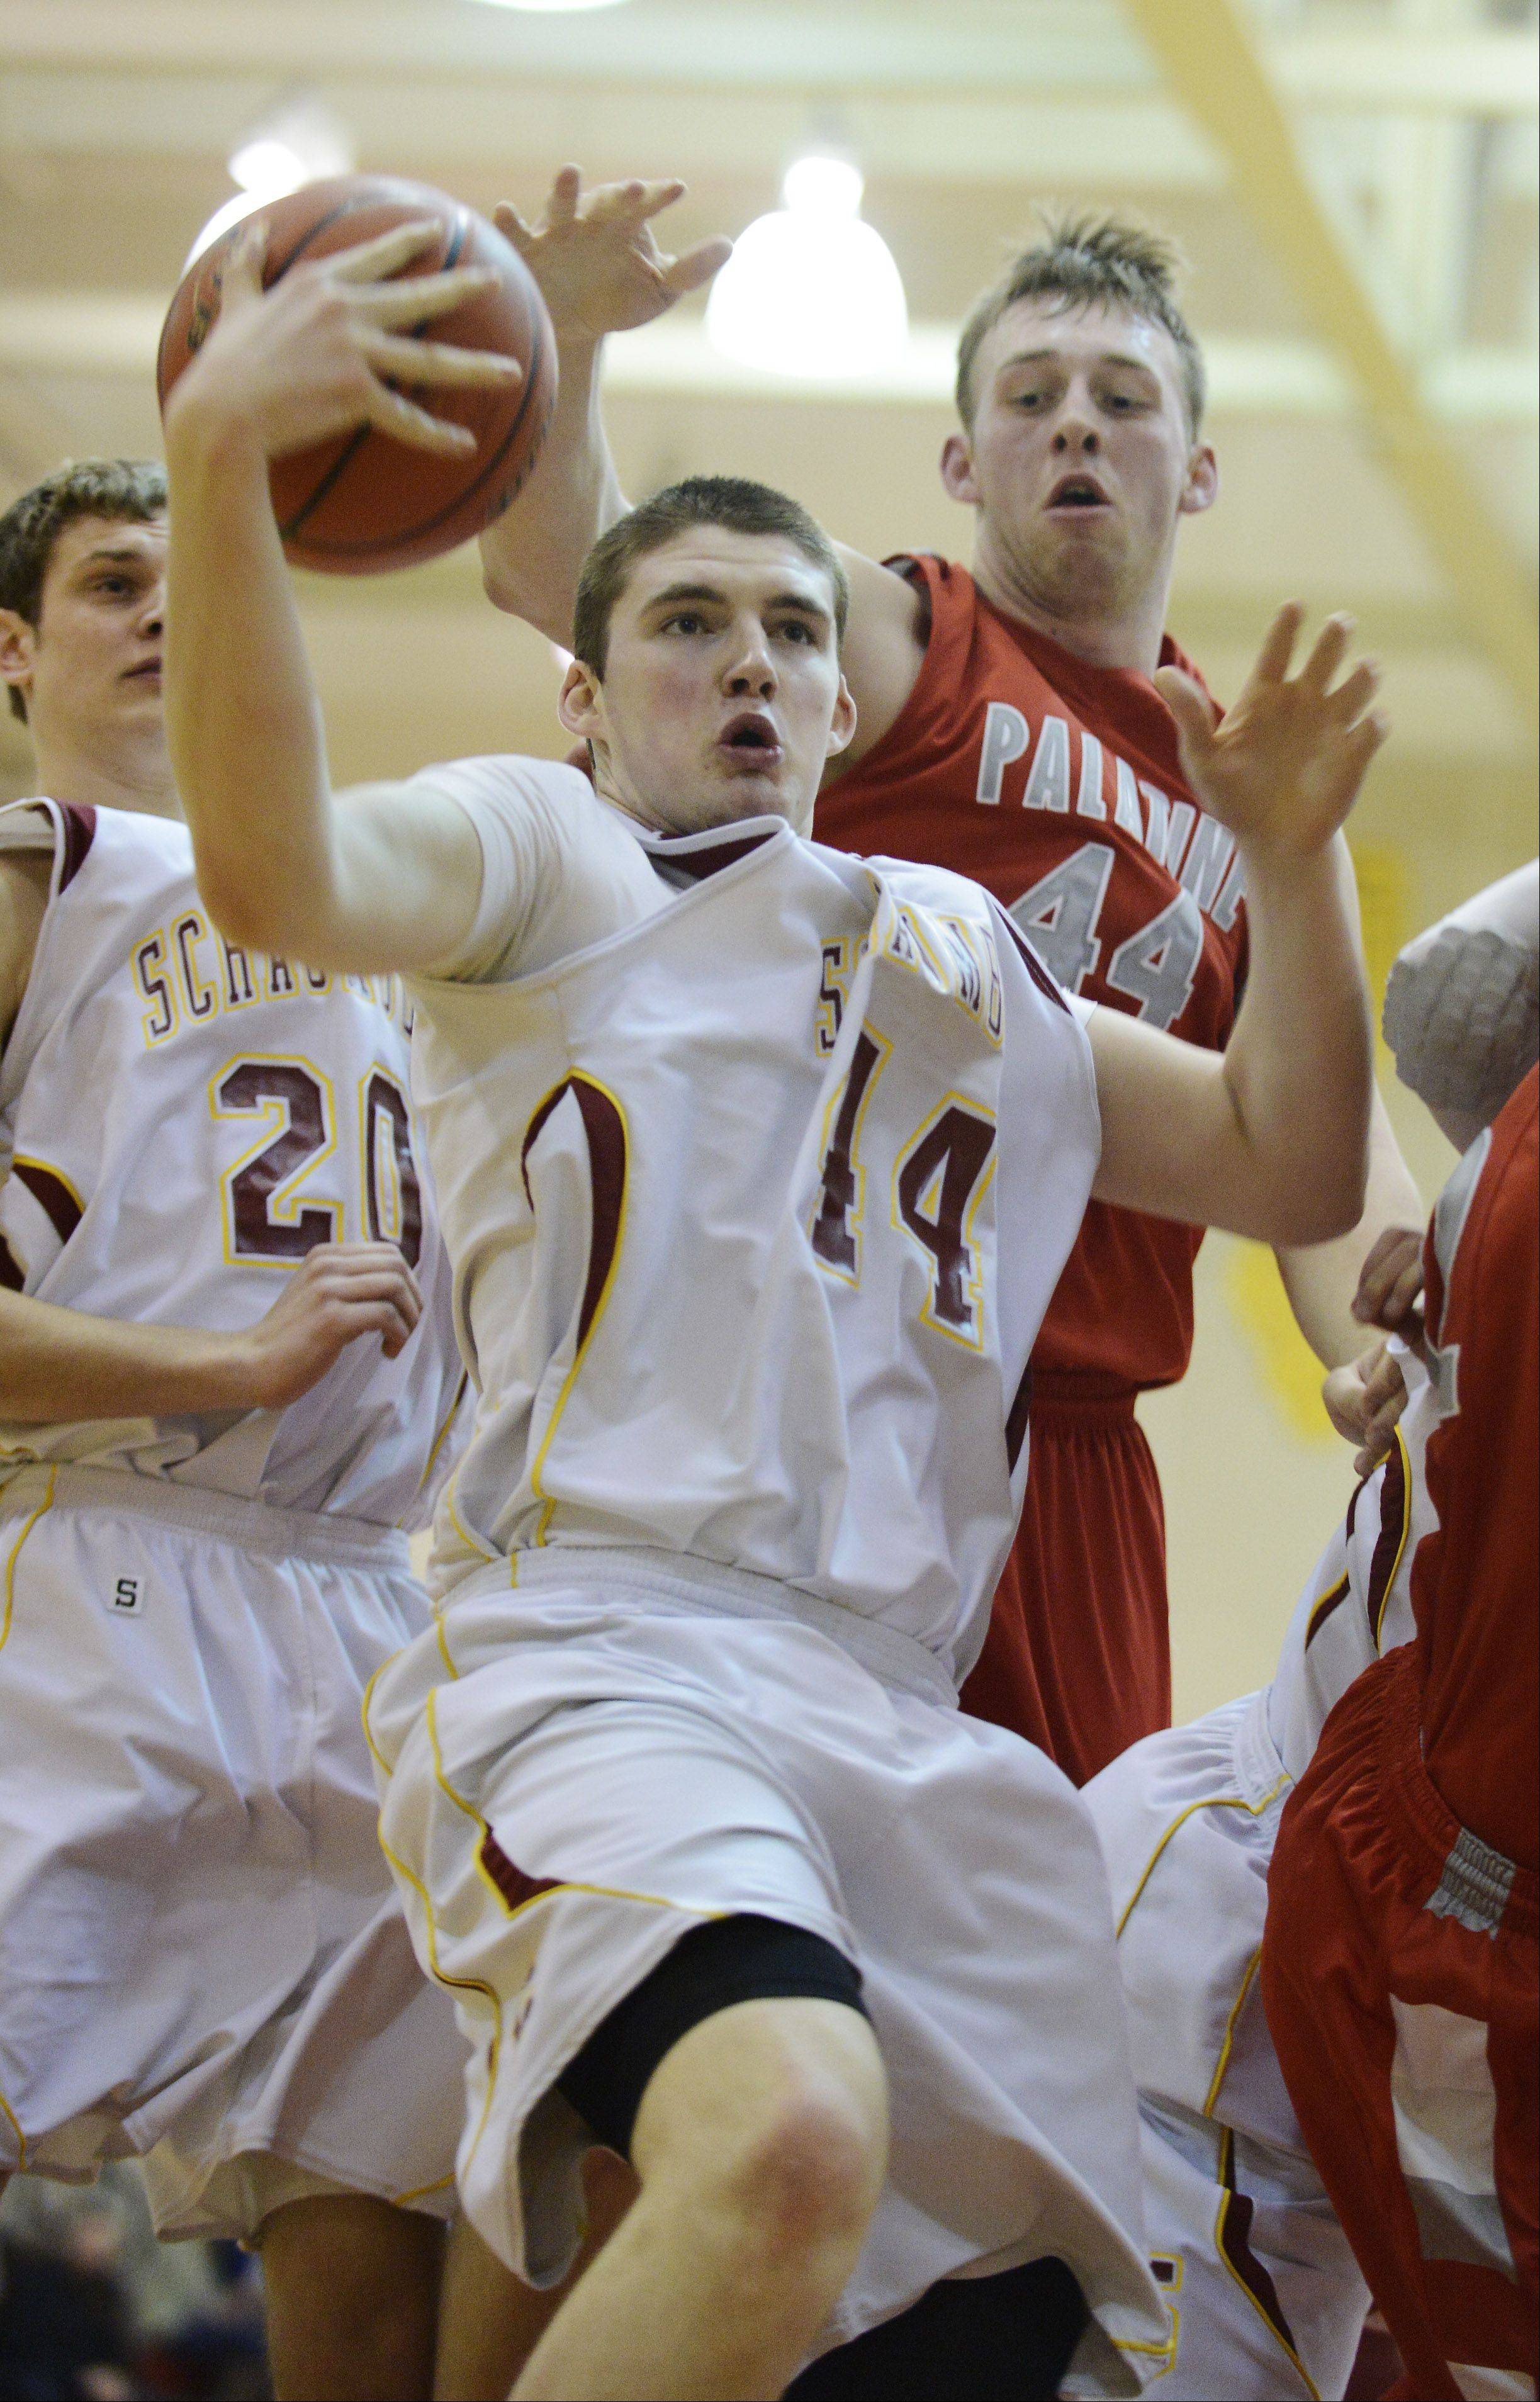 Schaumburg's Jimmy Lundquist grabs a rebound as Palatine's Baldus tries to knock the ball loose during Friday's MSL West game at Schaumburg.